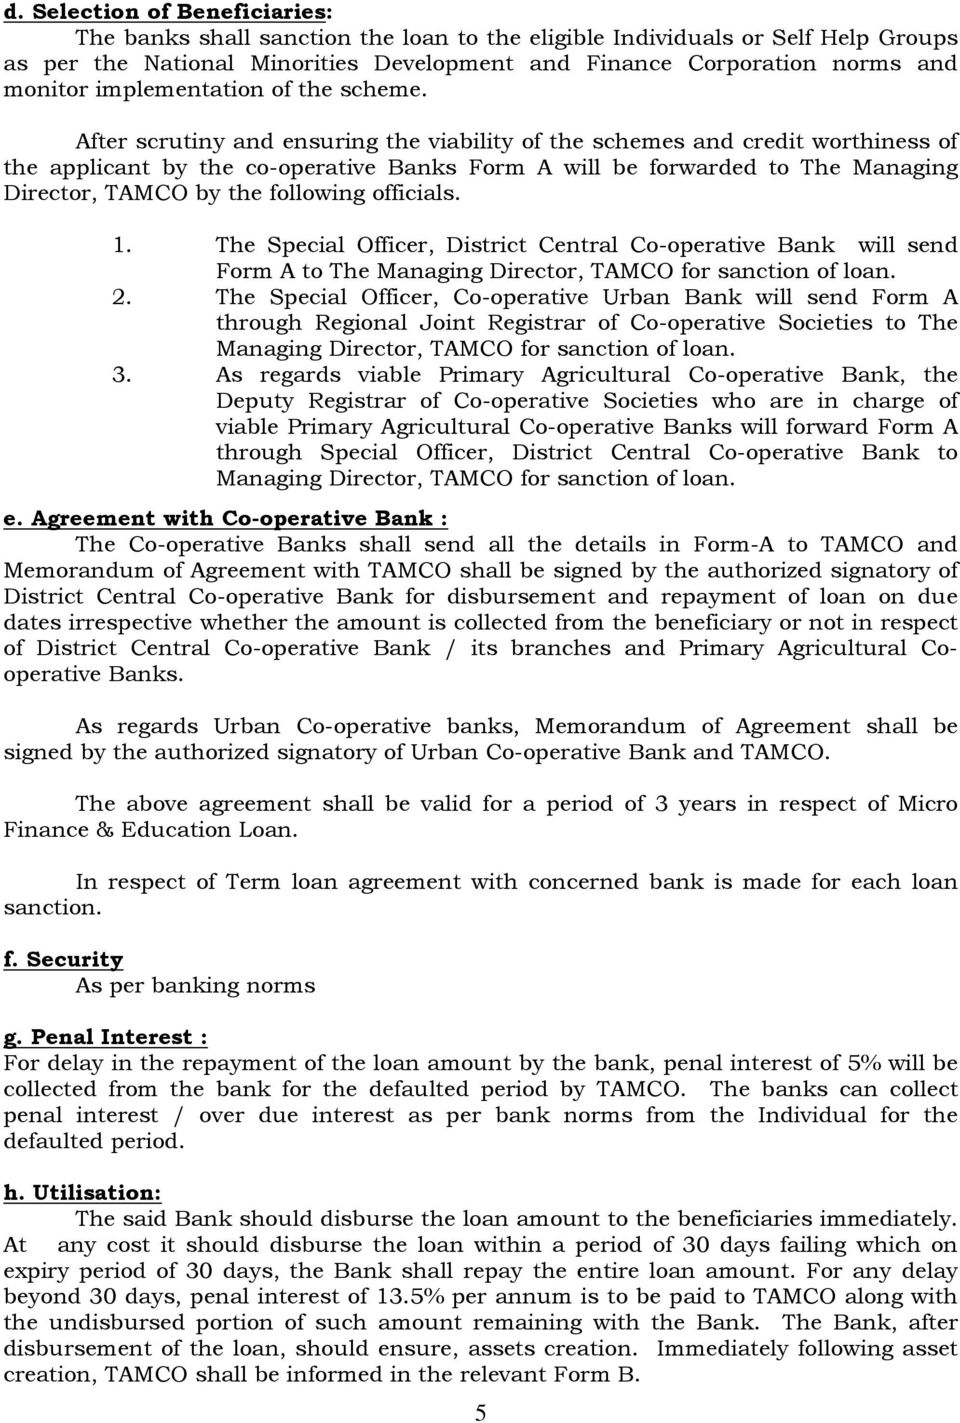 After scrutiny and ensuring the viability of the schemes and credit worthiness of the applicant by the co-operative Banks Form A will be forwarded to The Managing Director, TAMCO by the following